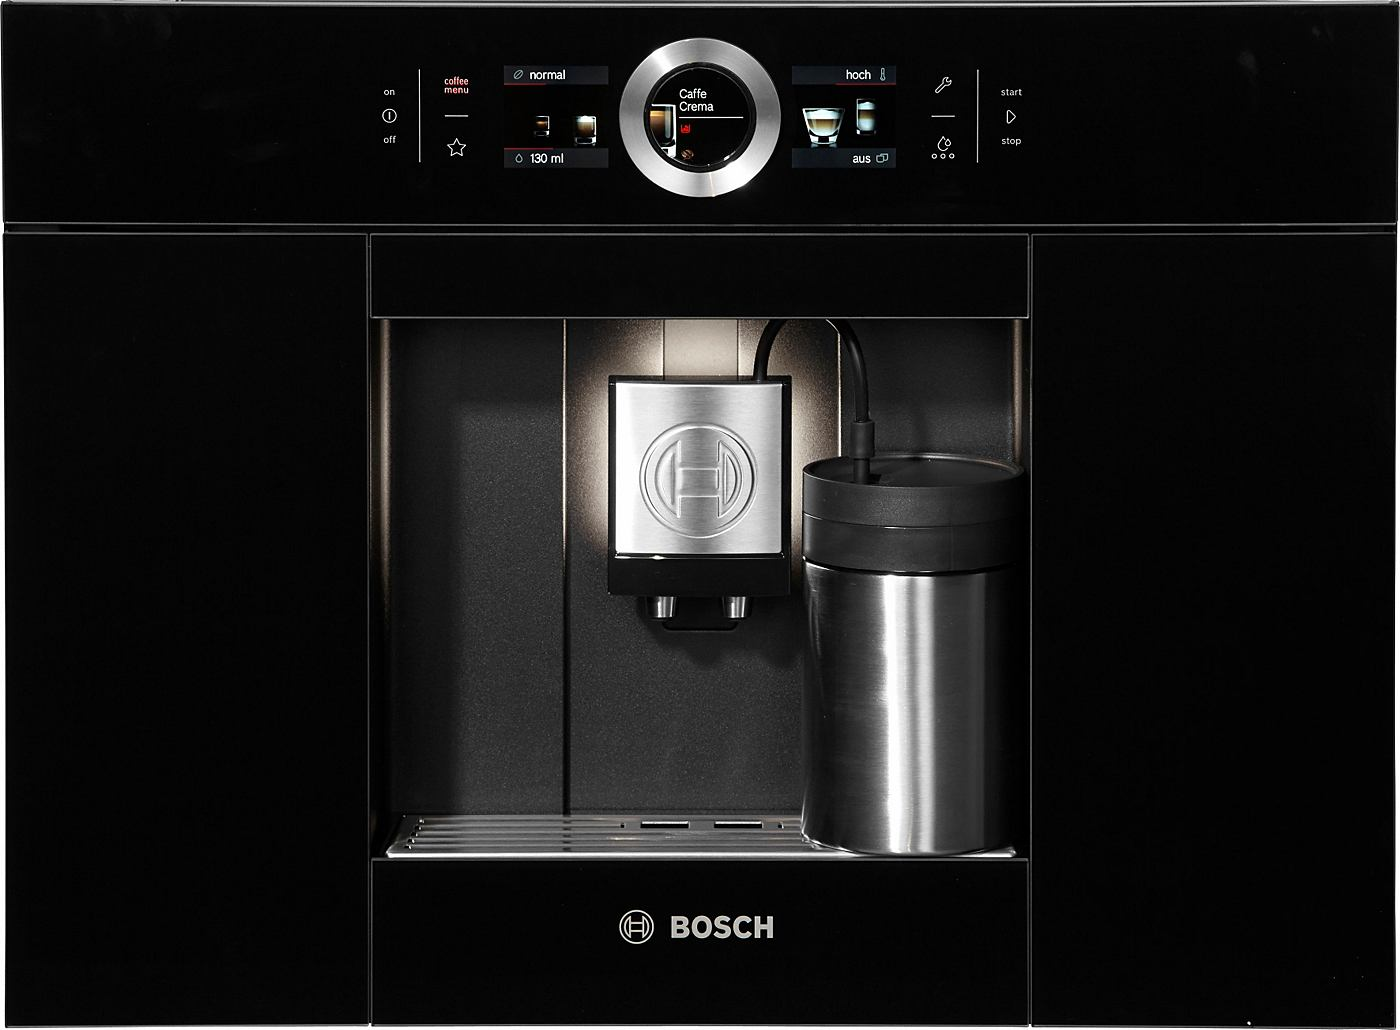 bosch einbau kaffeevollautomat ctl636eb1 integrierter milchtank. Black Bedroom Furniture Sets. Home Design Ideas